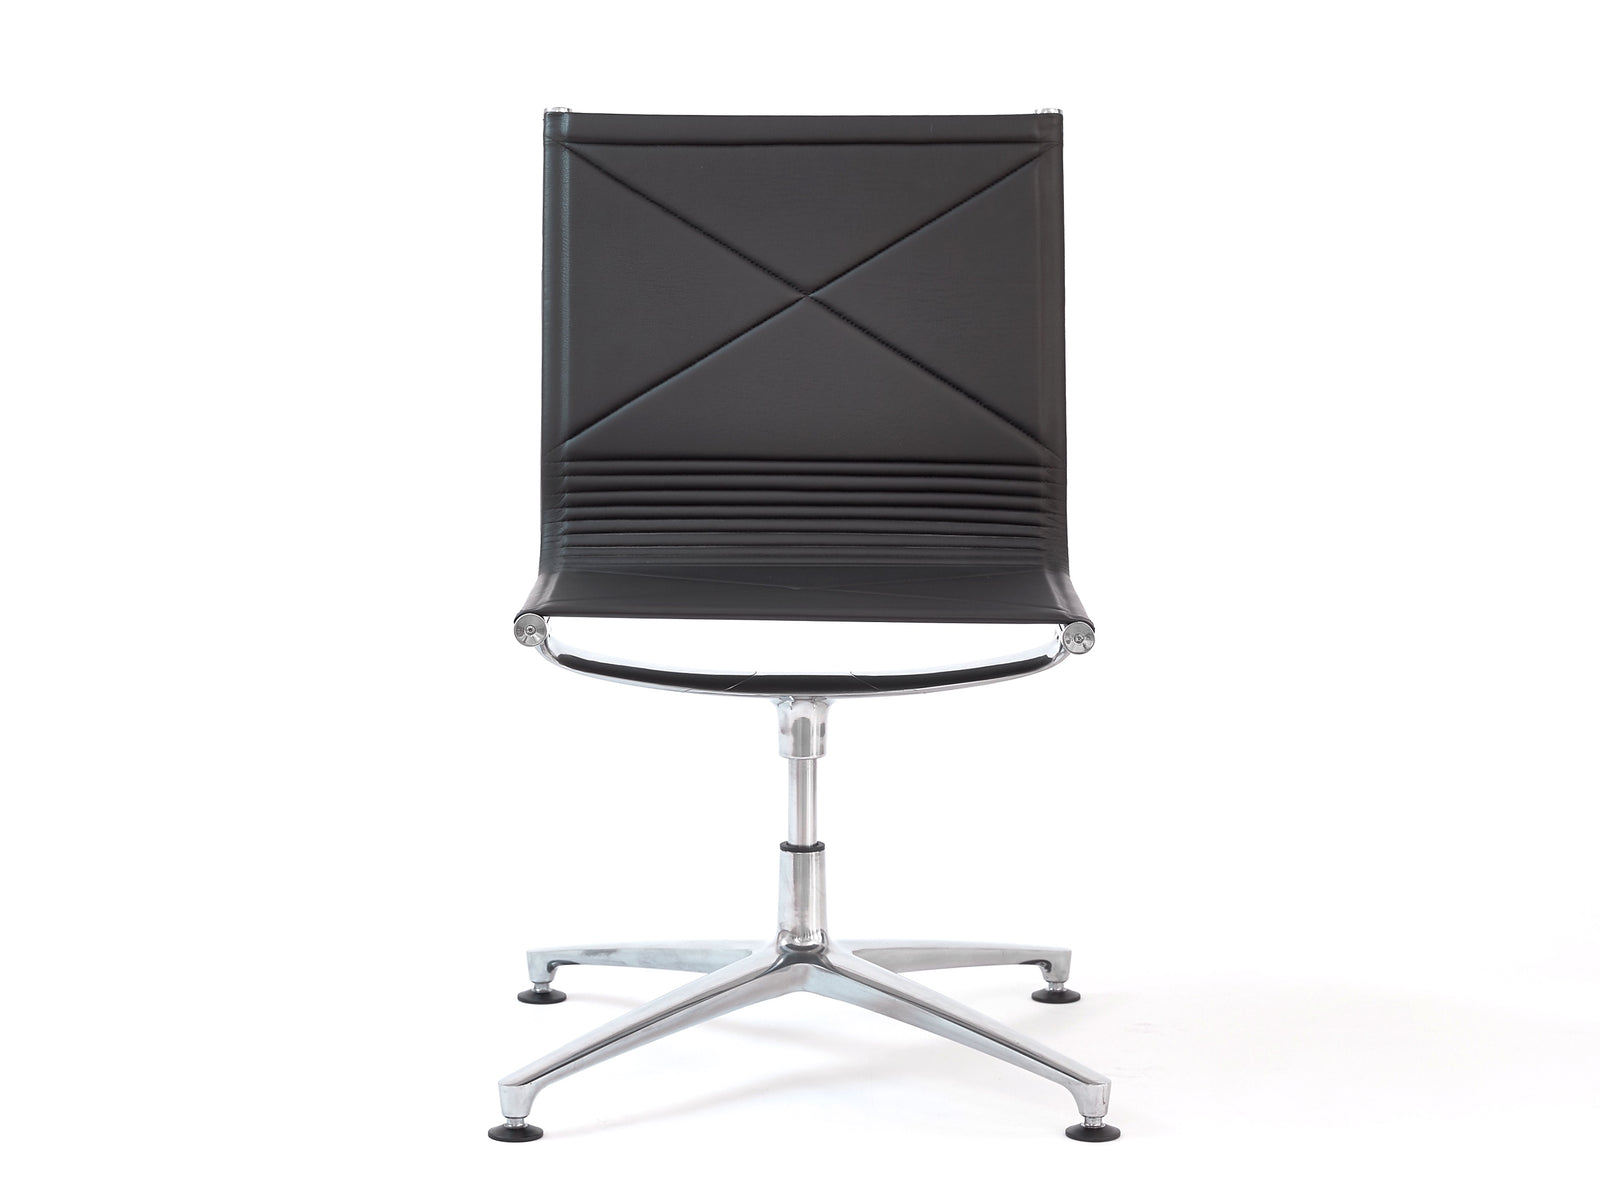 Subscription_OMNI_Anders_Hermansen_Joint_1201_office_chair_black_classic_four_legged_meeting_conference_room_fixed_seating